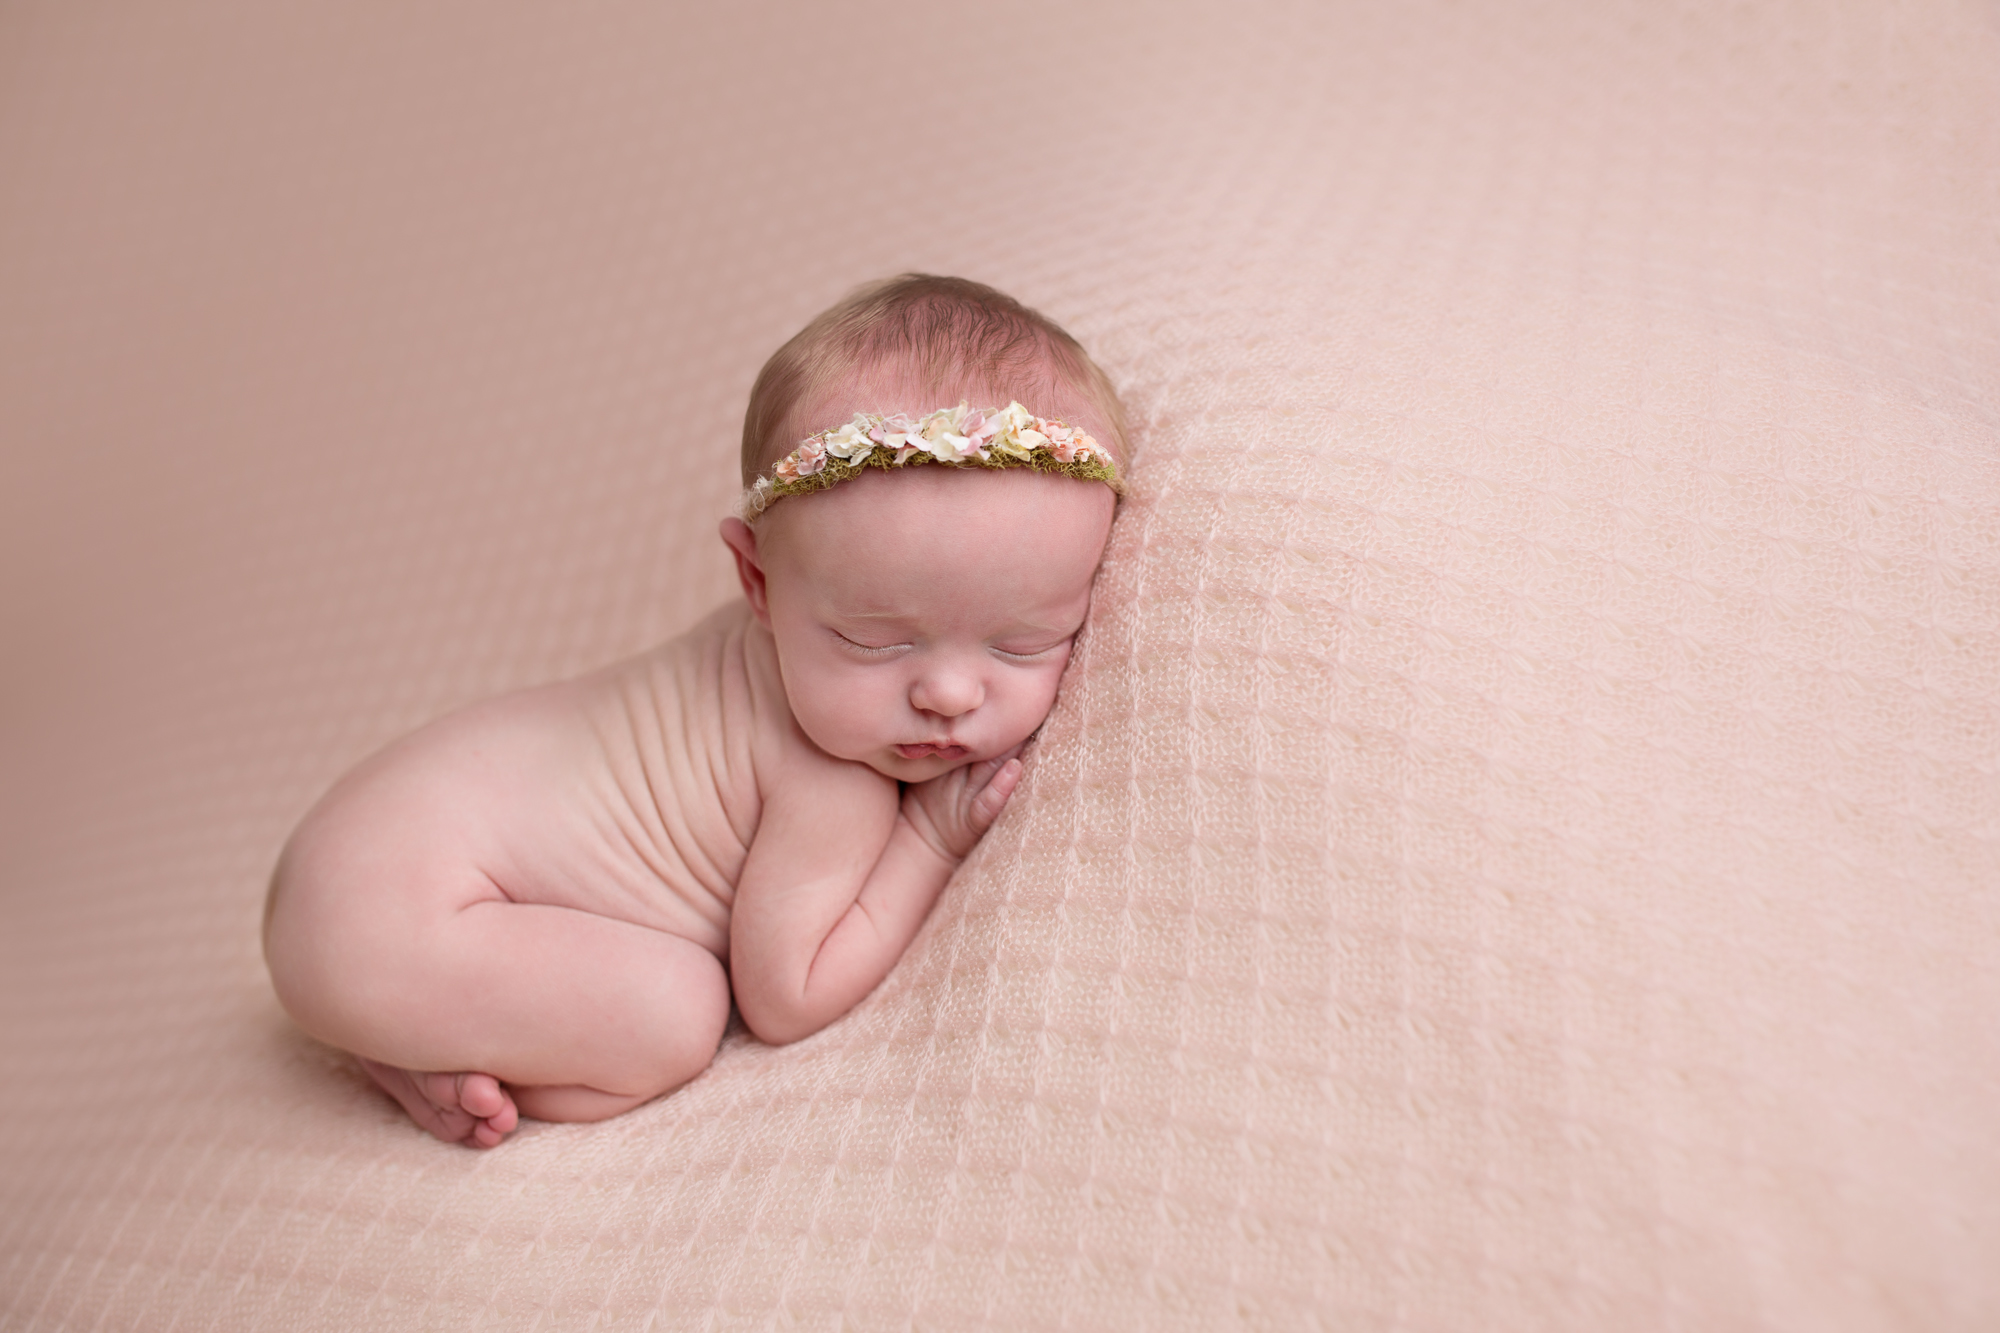 newborn baby girl on pink blanket